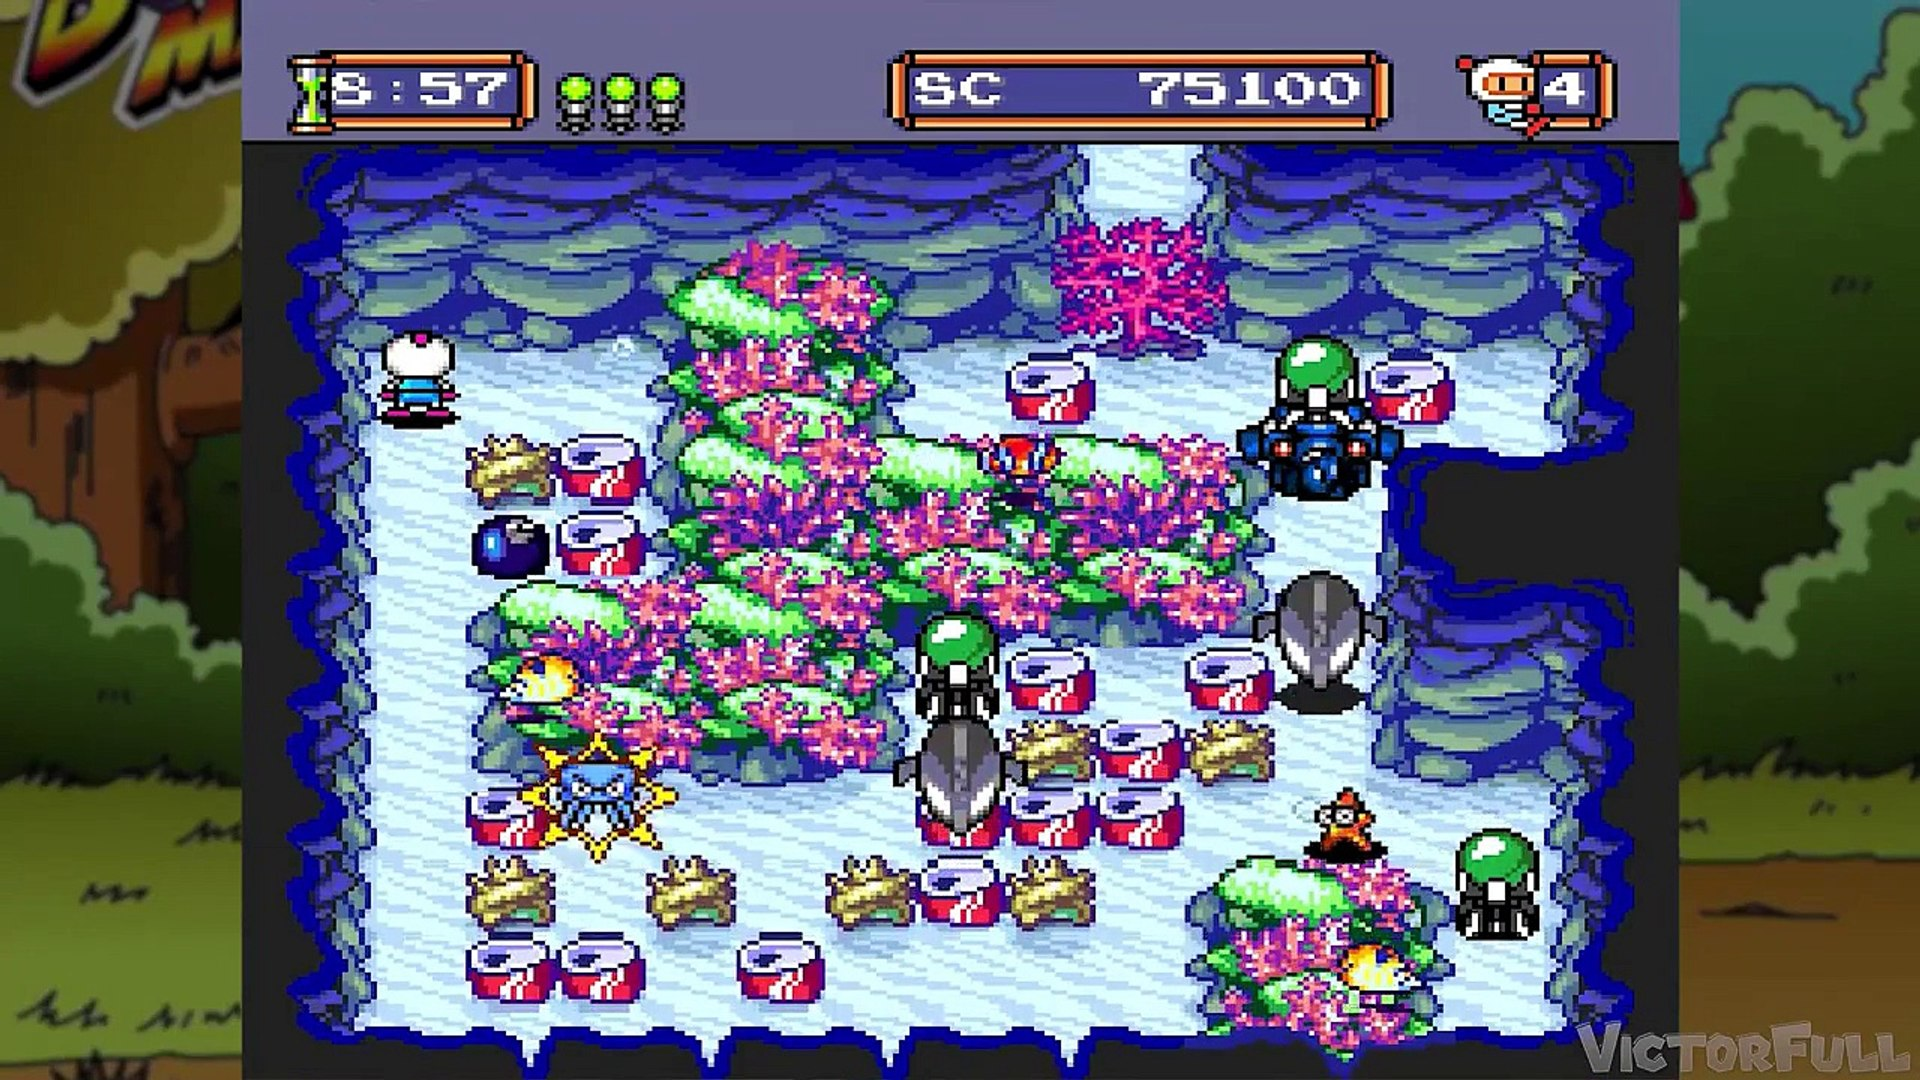 Bomberman 94: #3 Tainhas da Desgraça (Fundo do Mar)